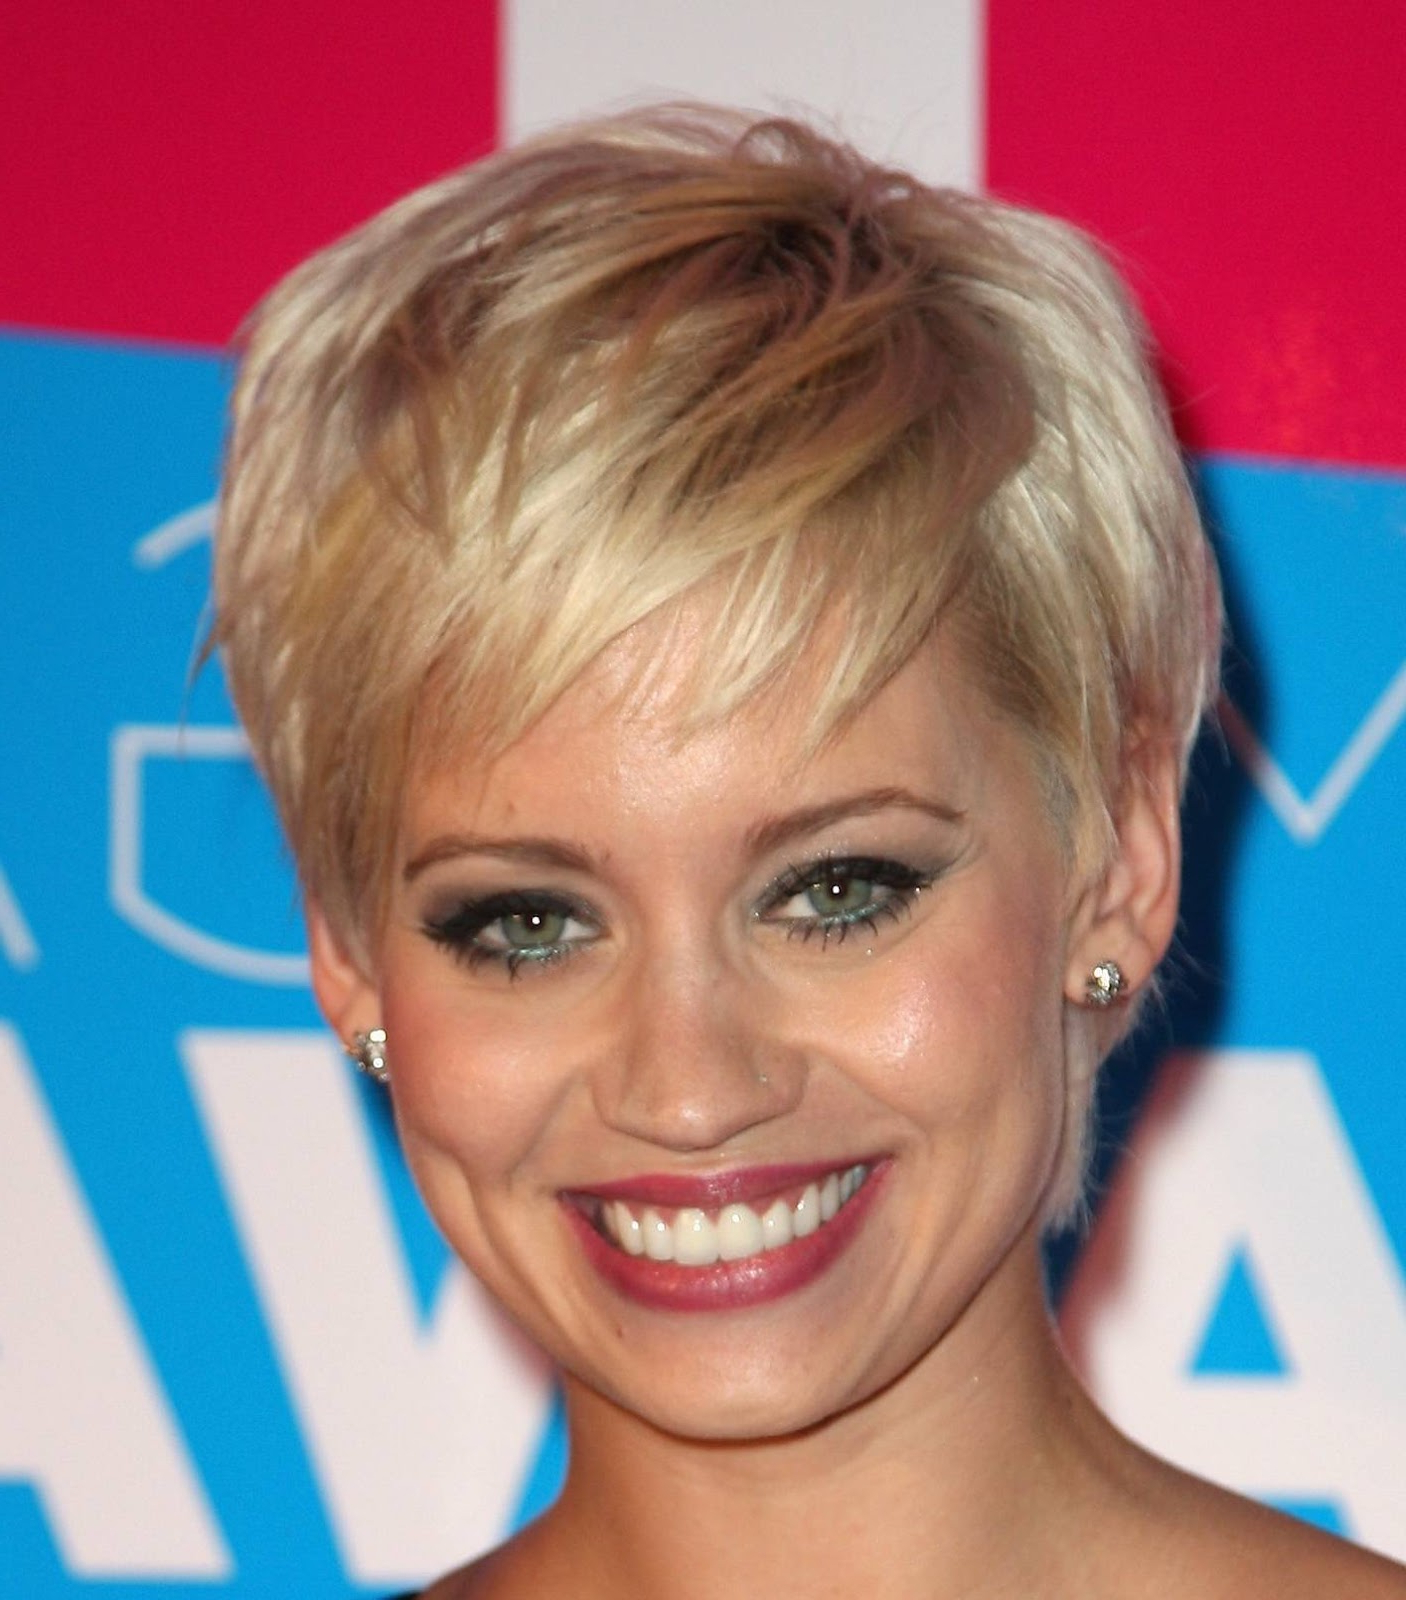 43 Short Haircuts For Round Face Women | Hairstylo Within Low Maintenance Short Haircuts For Round Faces (View 9 of 25)